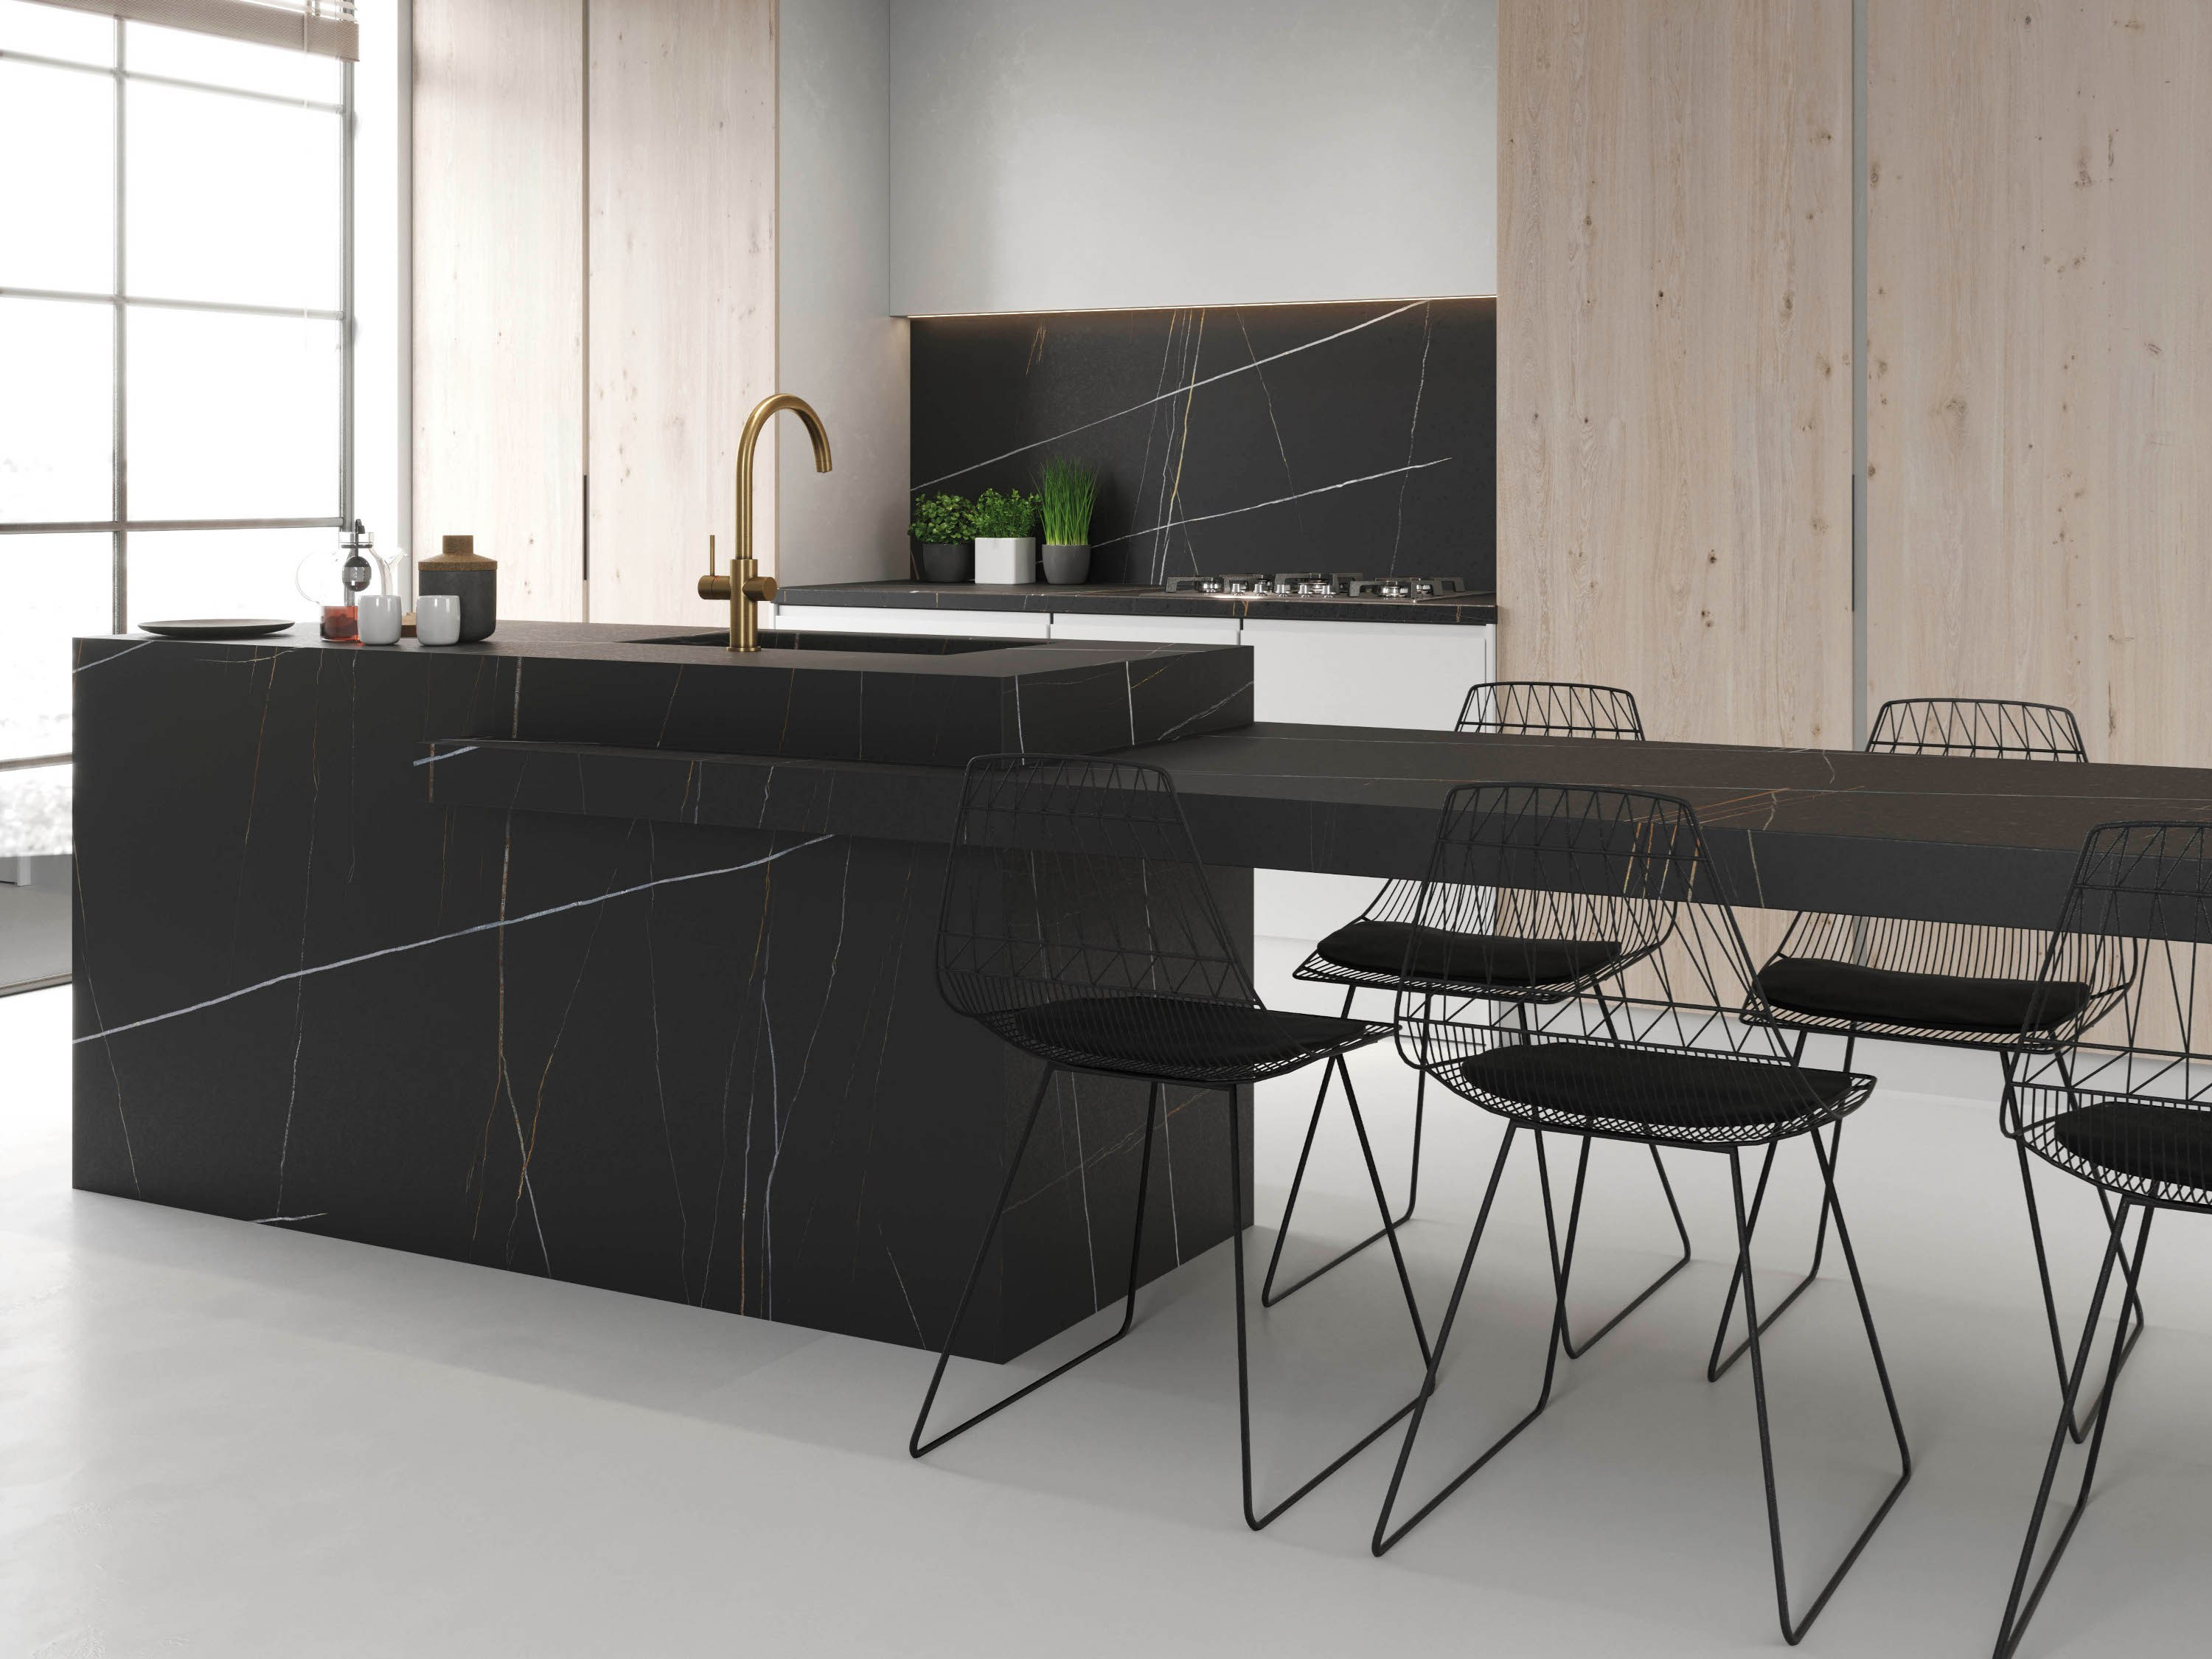 Porcelain stoneware kitchen worktop azalai itopker by inalco - Top cucina in ceramica ...